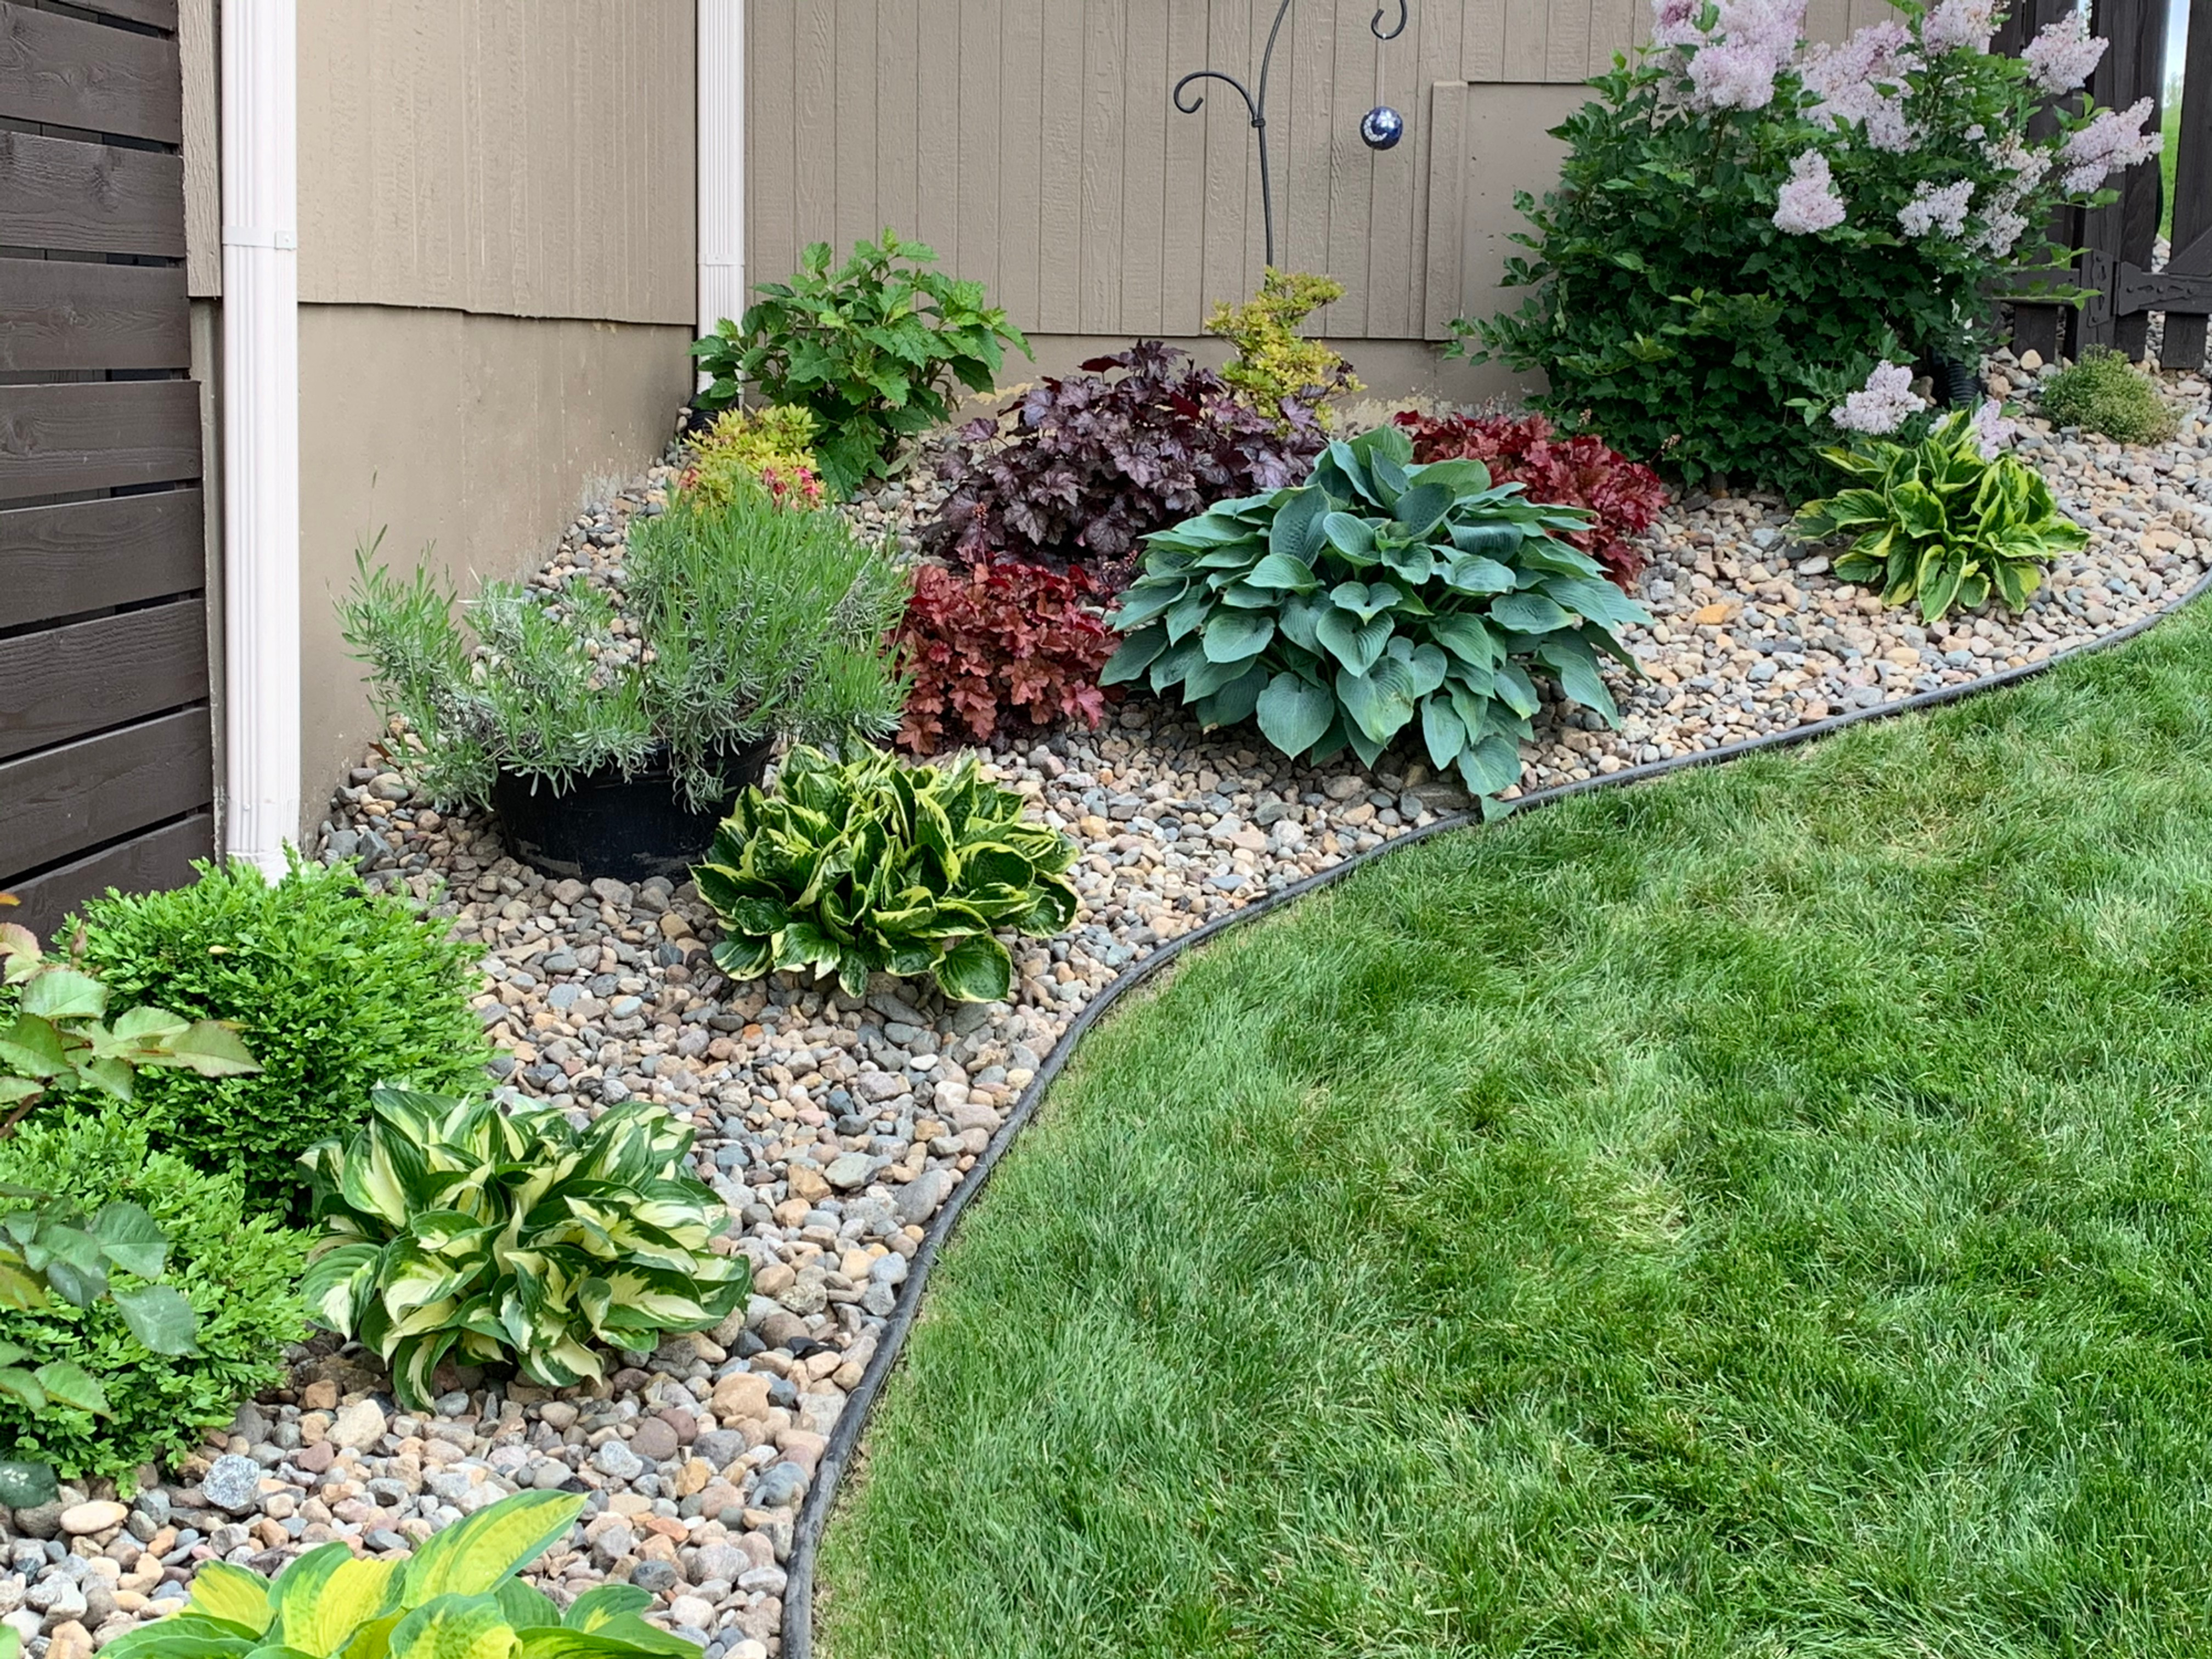 Landscape Consulting- By Appt. Only